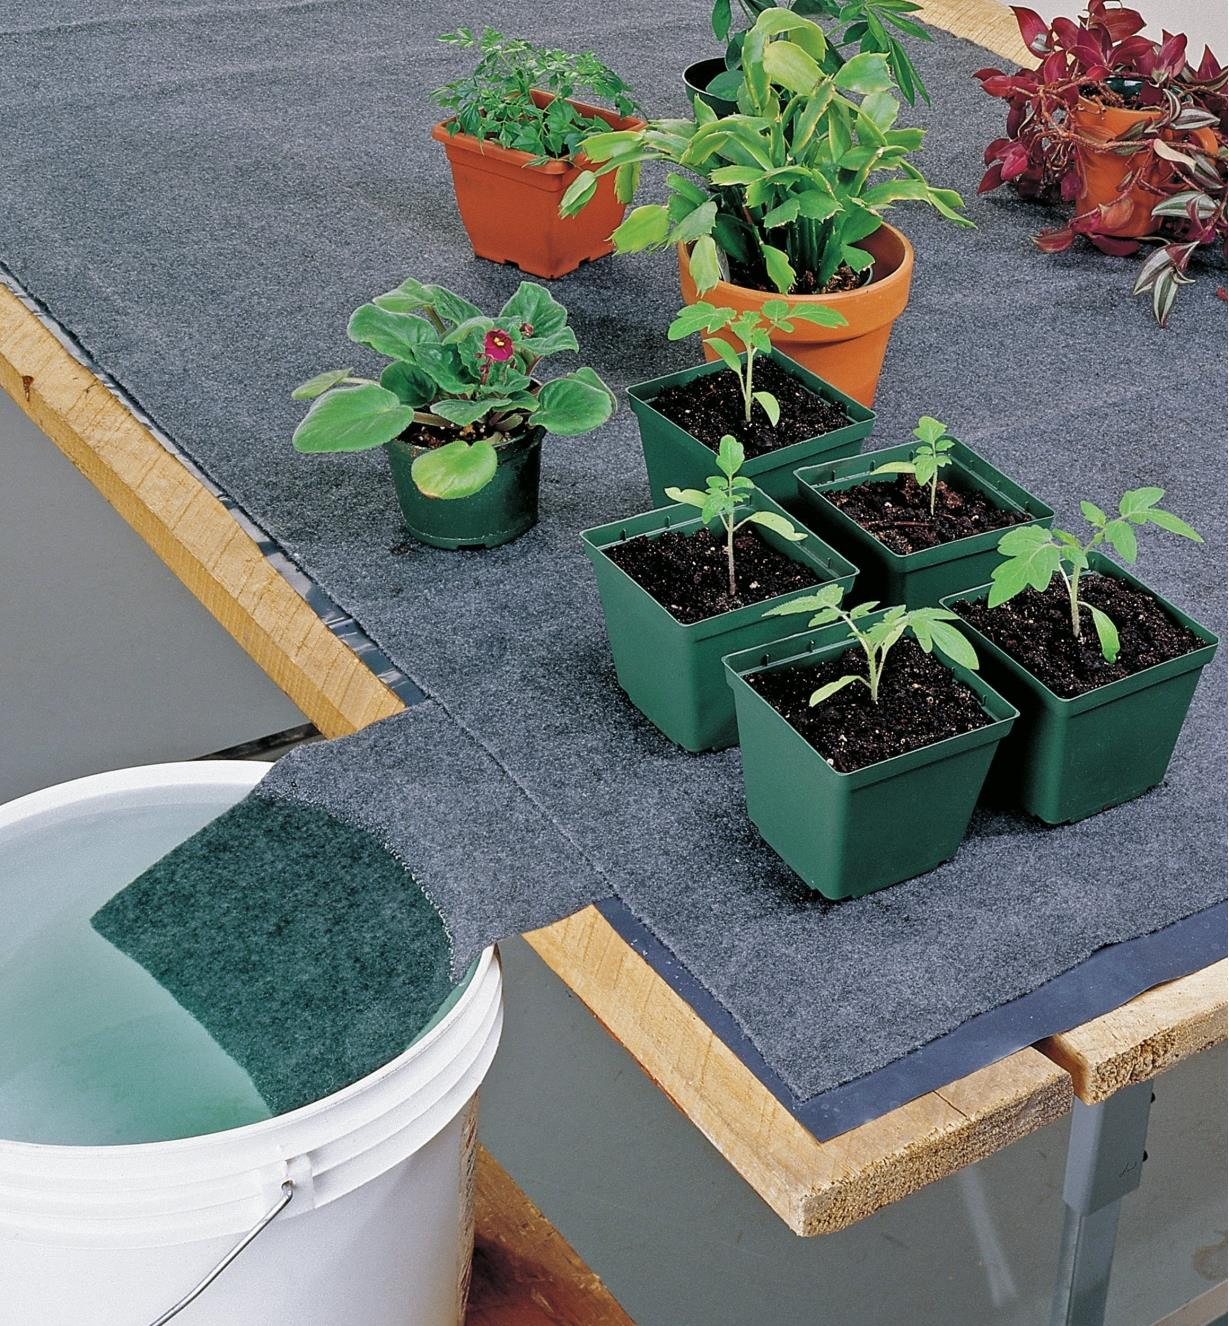 Various potted plants sit on a watering mat that is absorbing water from a bucket